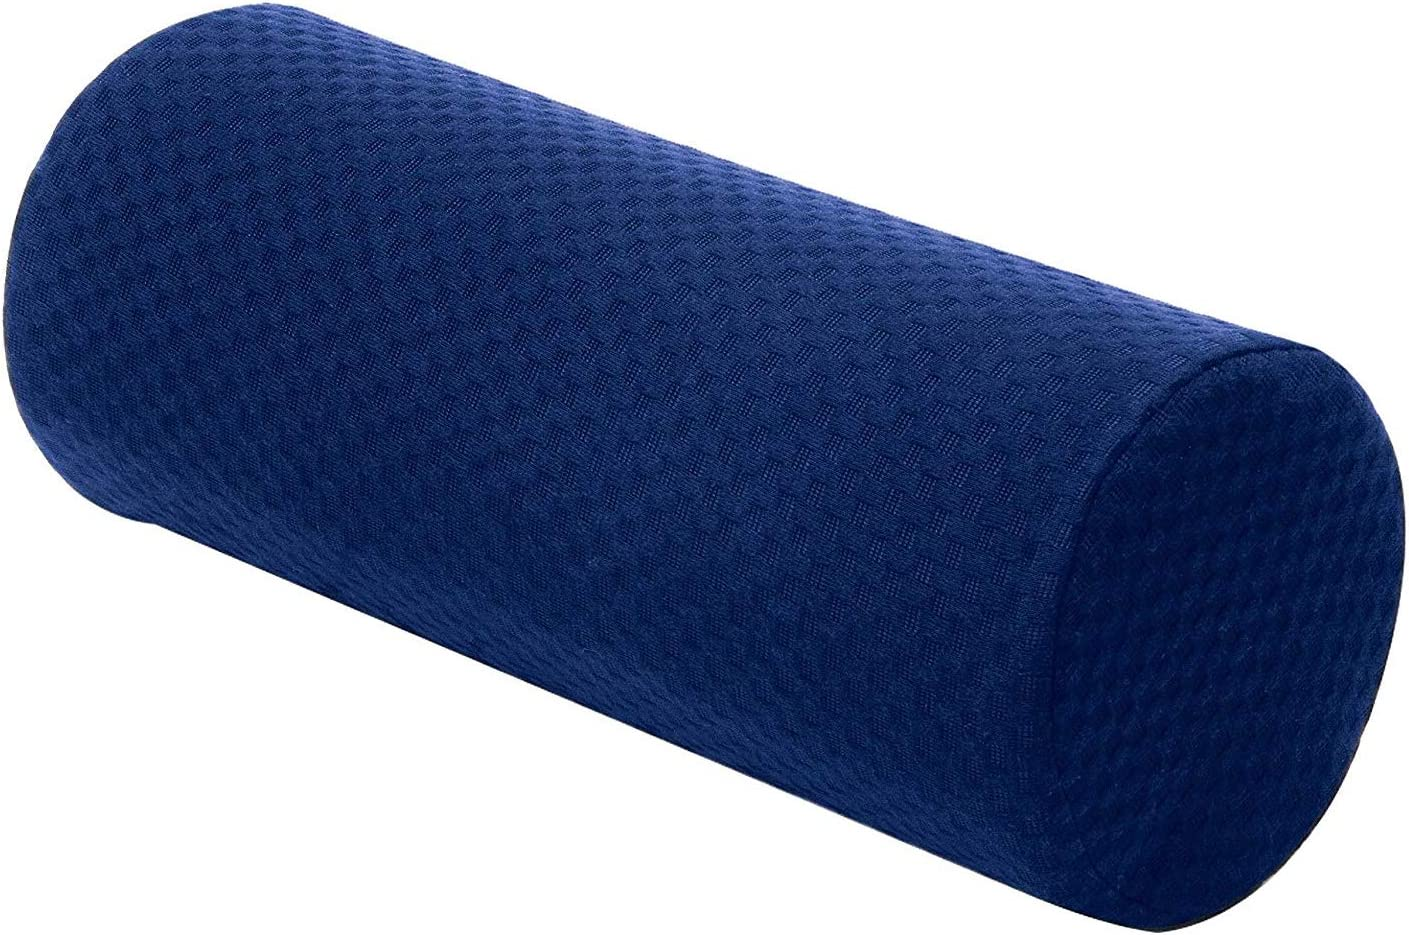 Carex Lumbar Roll Lower Back Support Pillow - Chair Seat Posture Corrector - Relieve Spine and Neck Pain with McKenzie Method, Use in Bed During ...